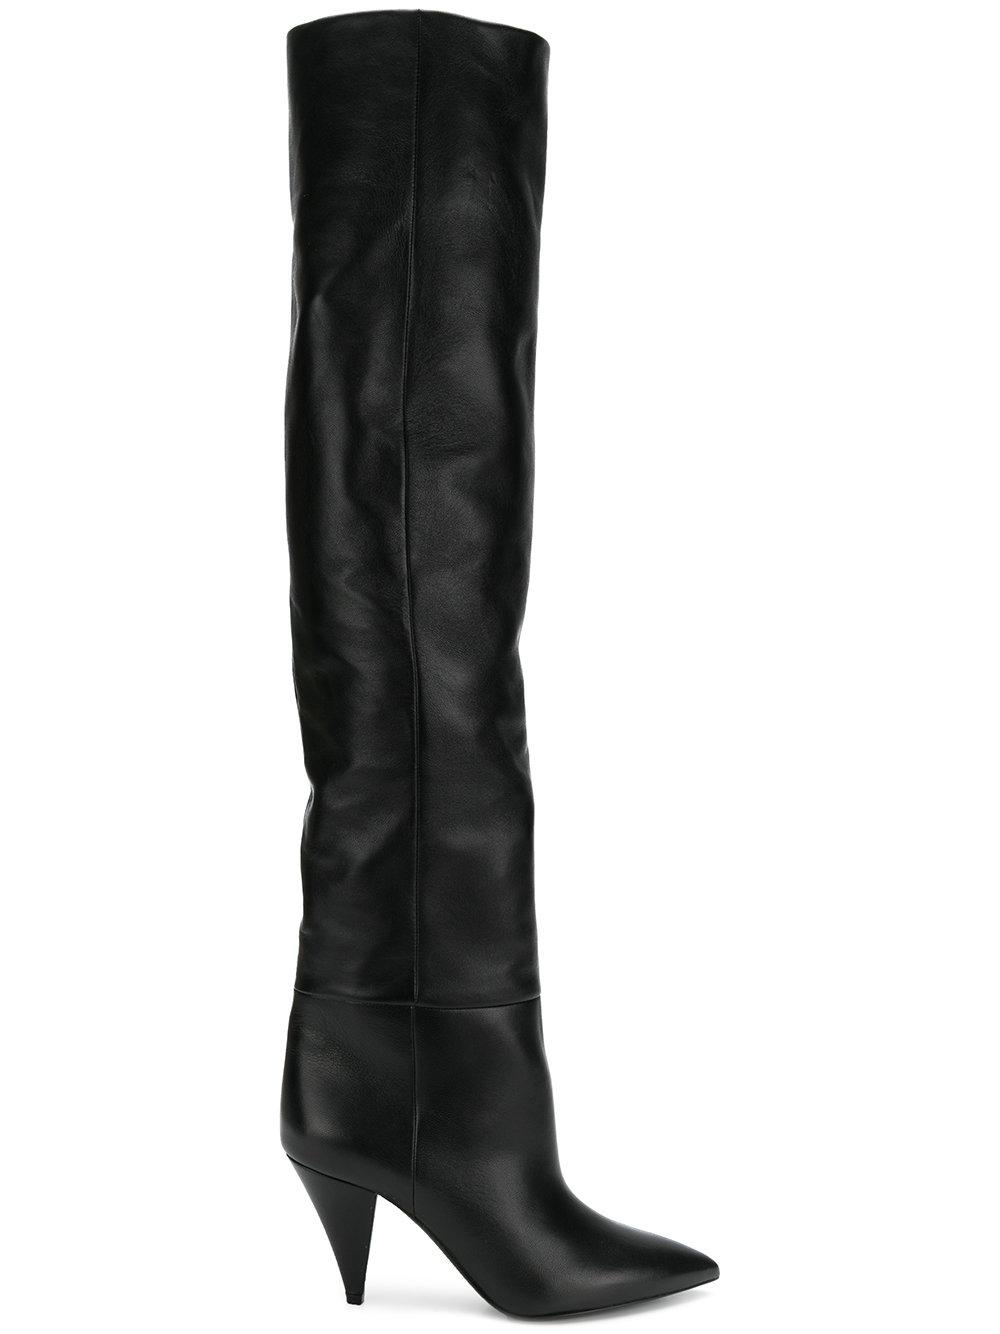 7e1abe59d64 Niki Over The Knee Boots in Black